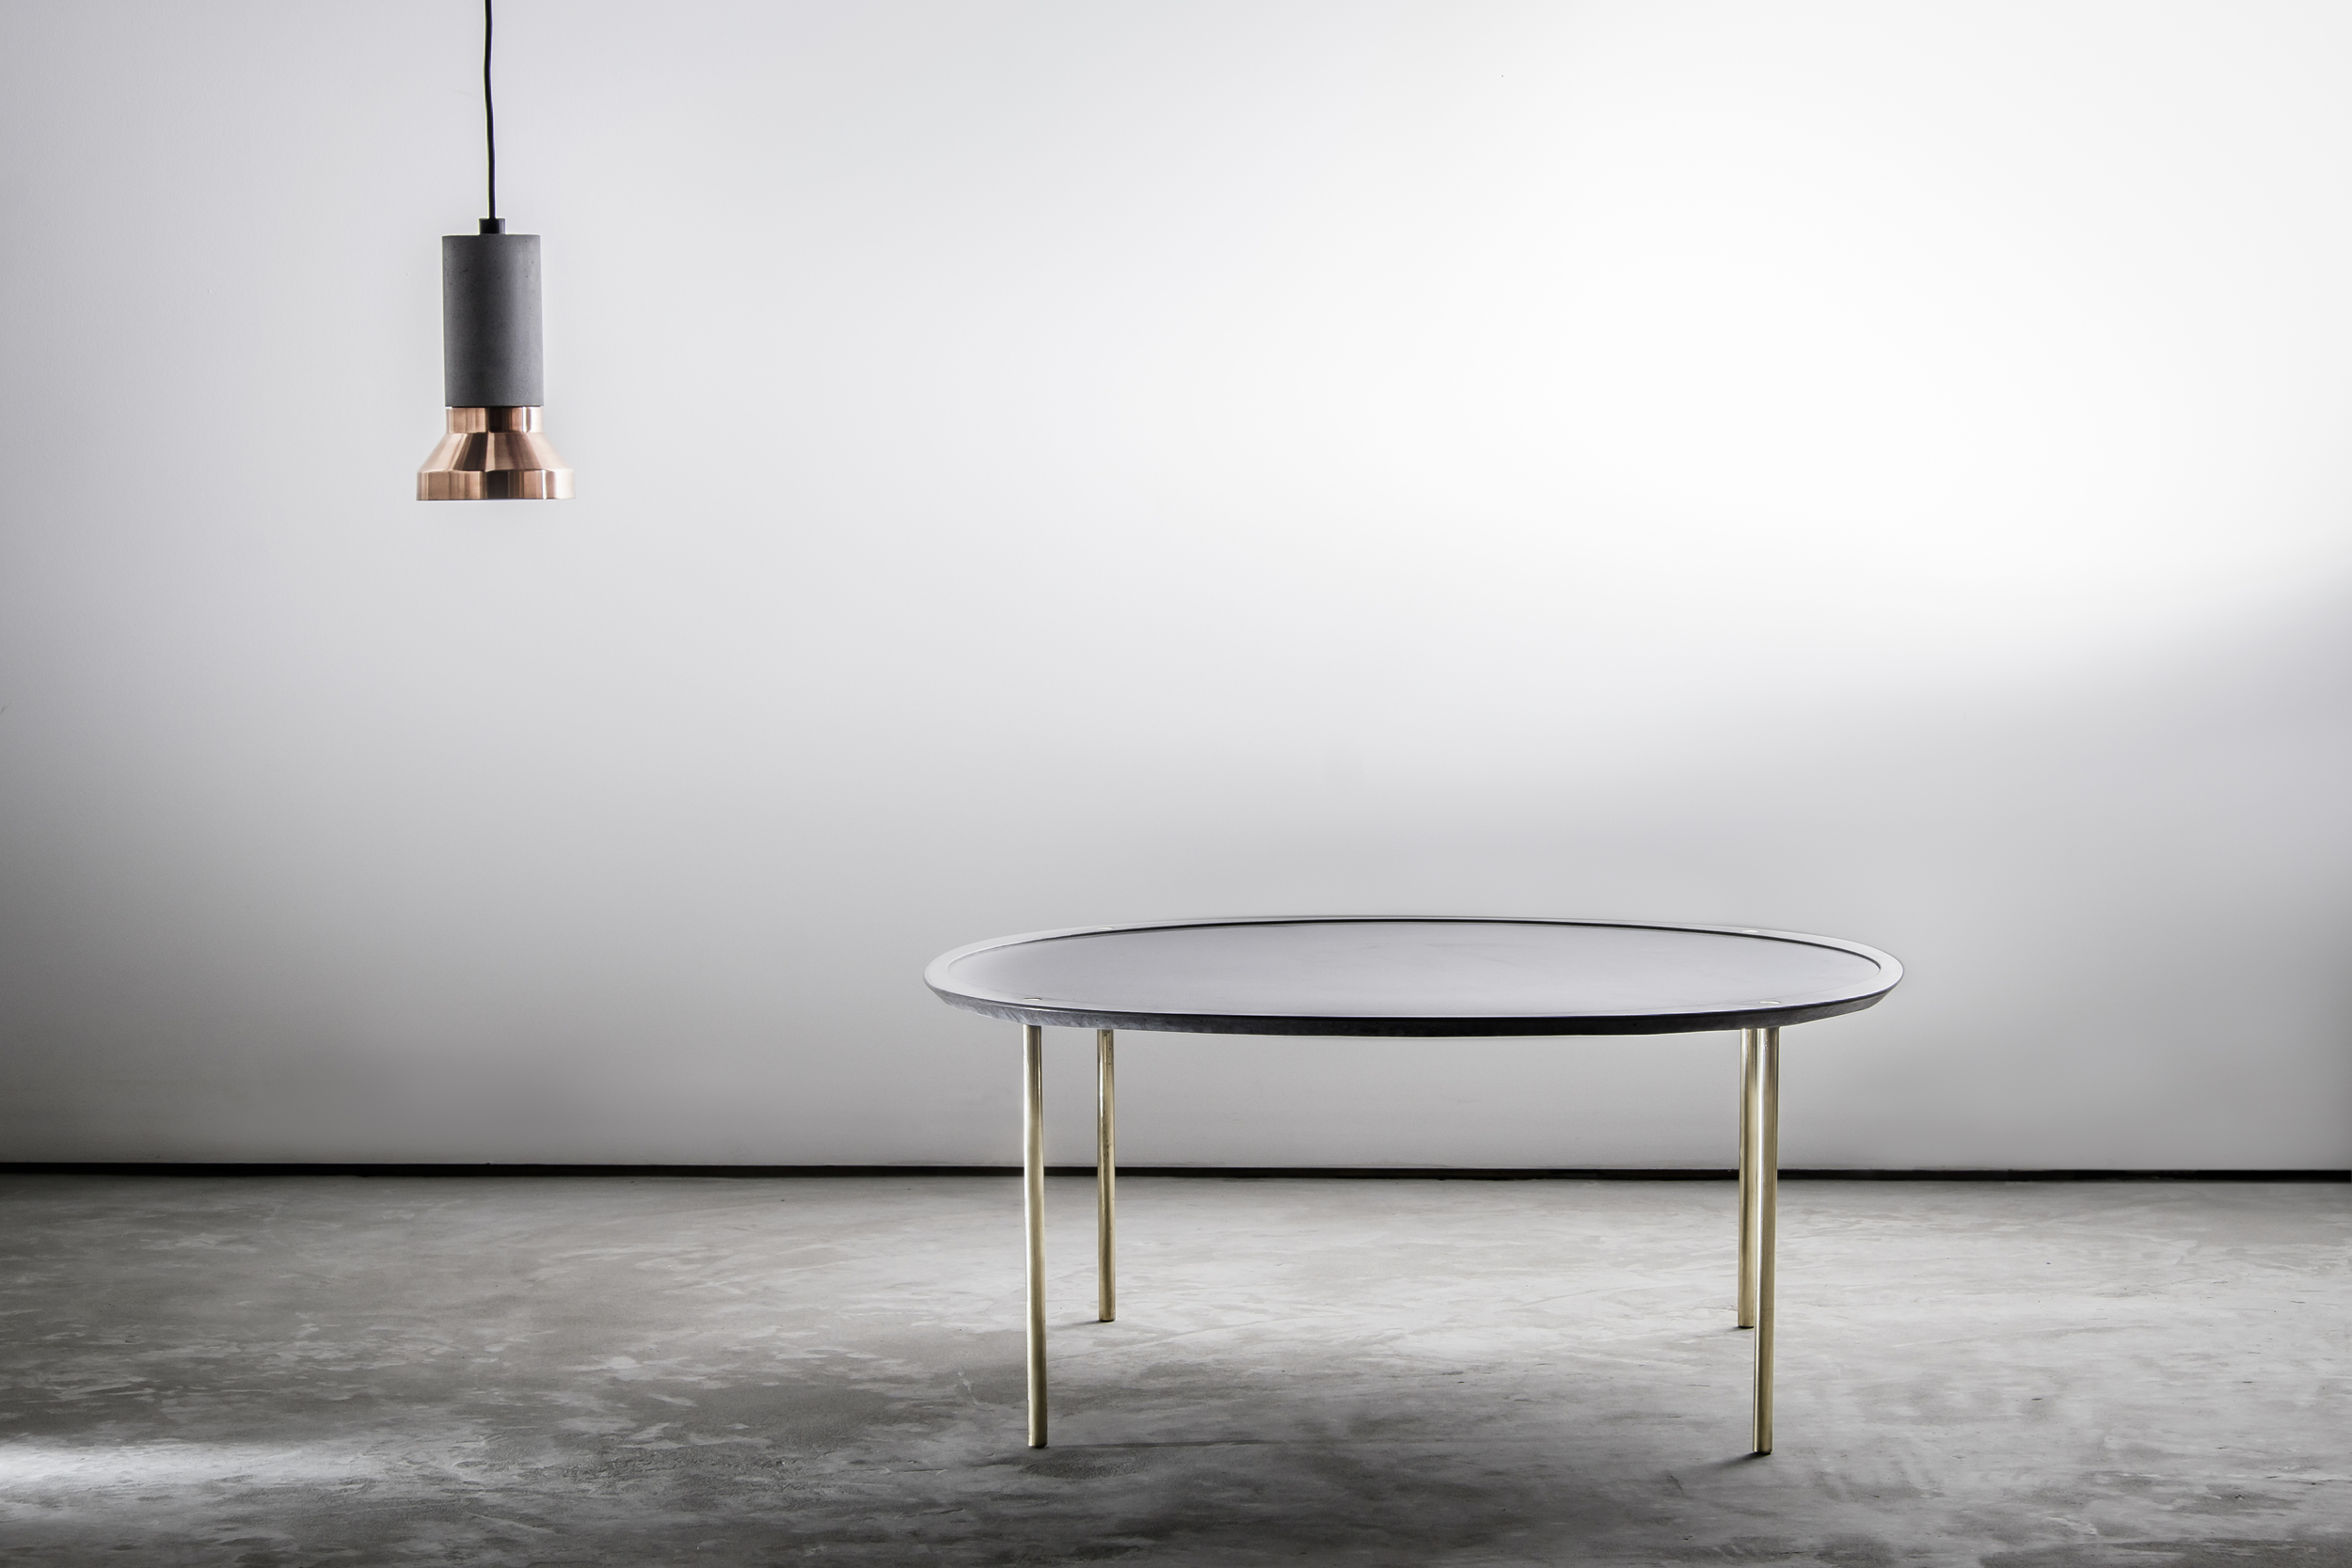 Spun Concrete Pendant Light with Messinki Concrete Coffee Table